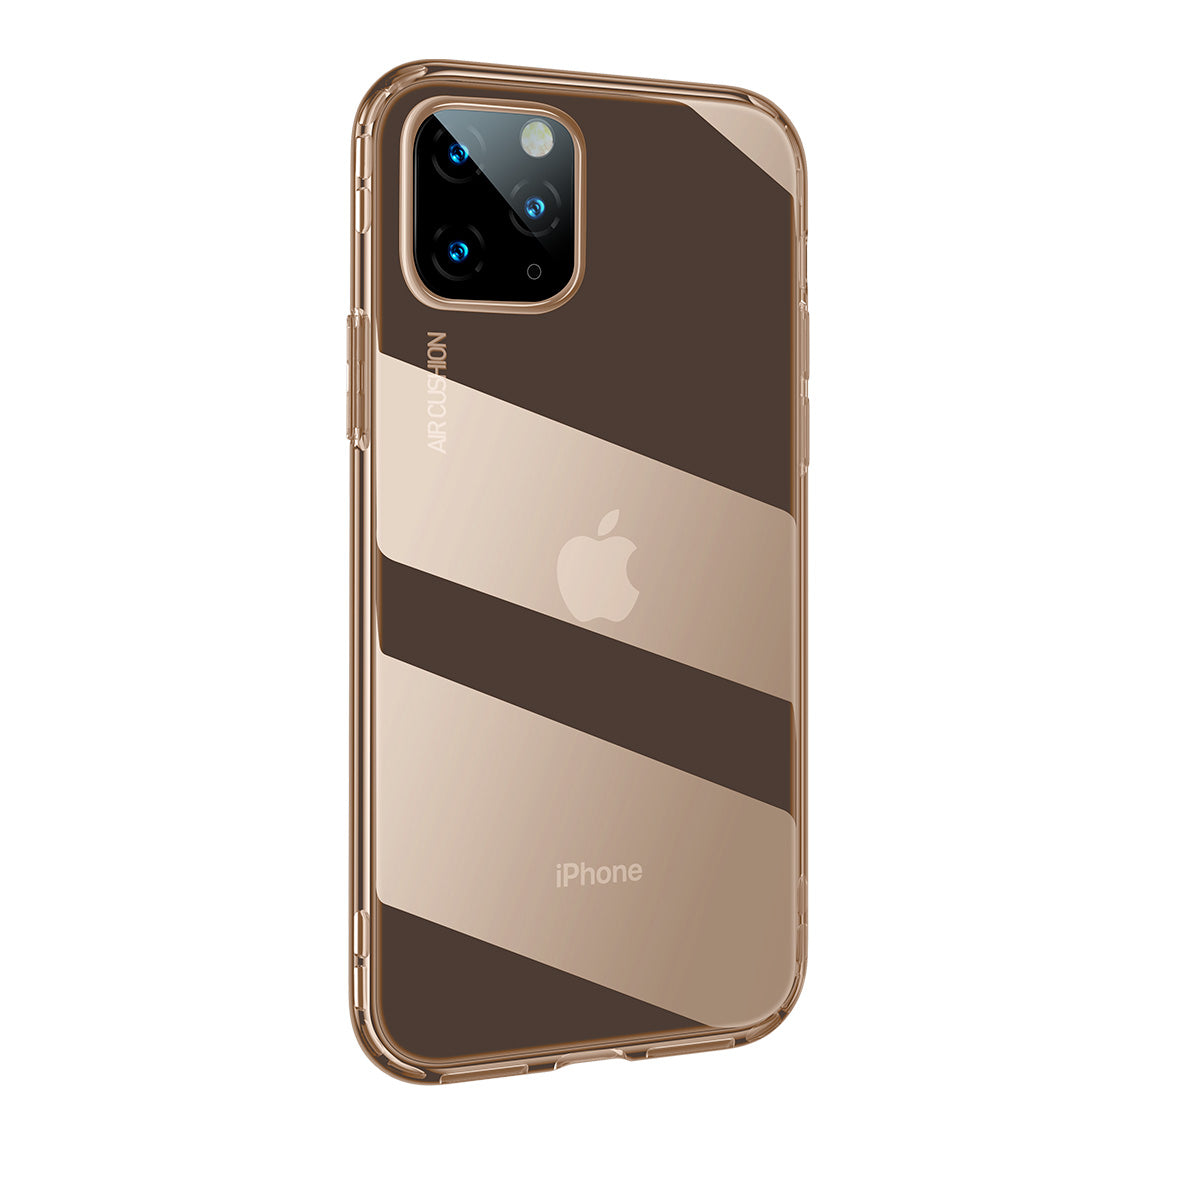 Baseus_Safety_Airbags_Case_iPhone_11_Pro_Max_Case_Transparent_Gold_Side_S78YSQZD289G.jpg